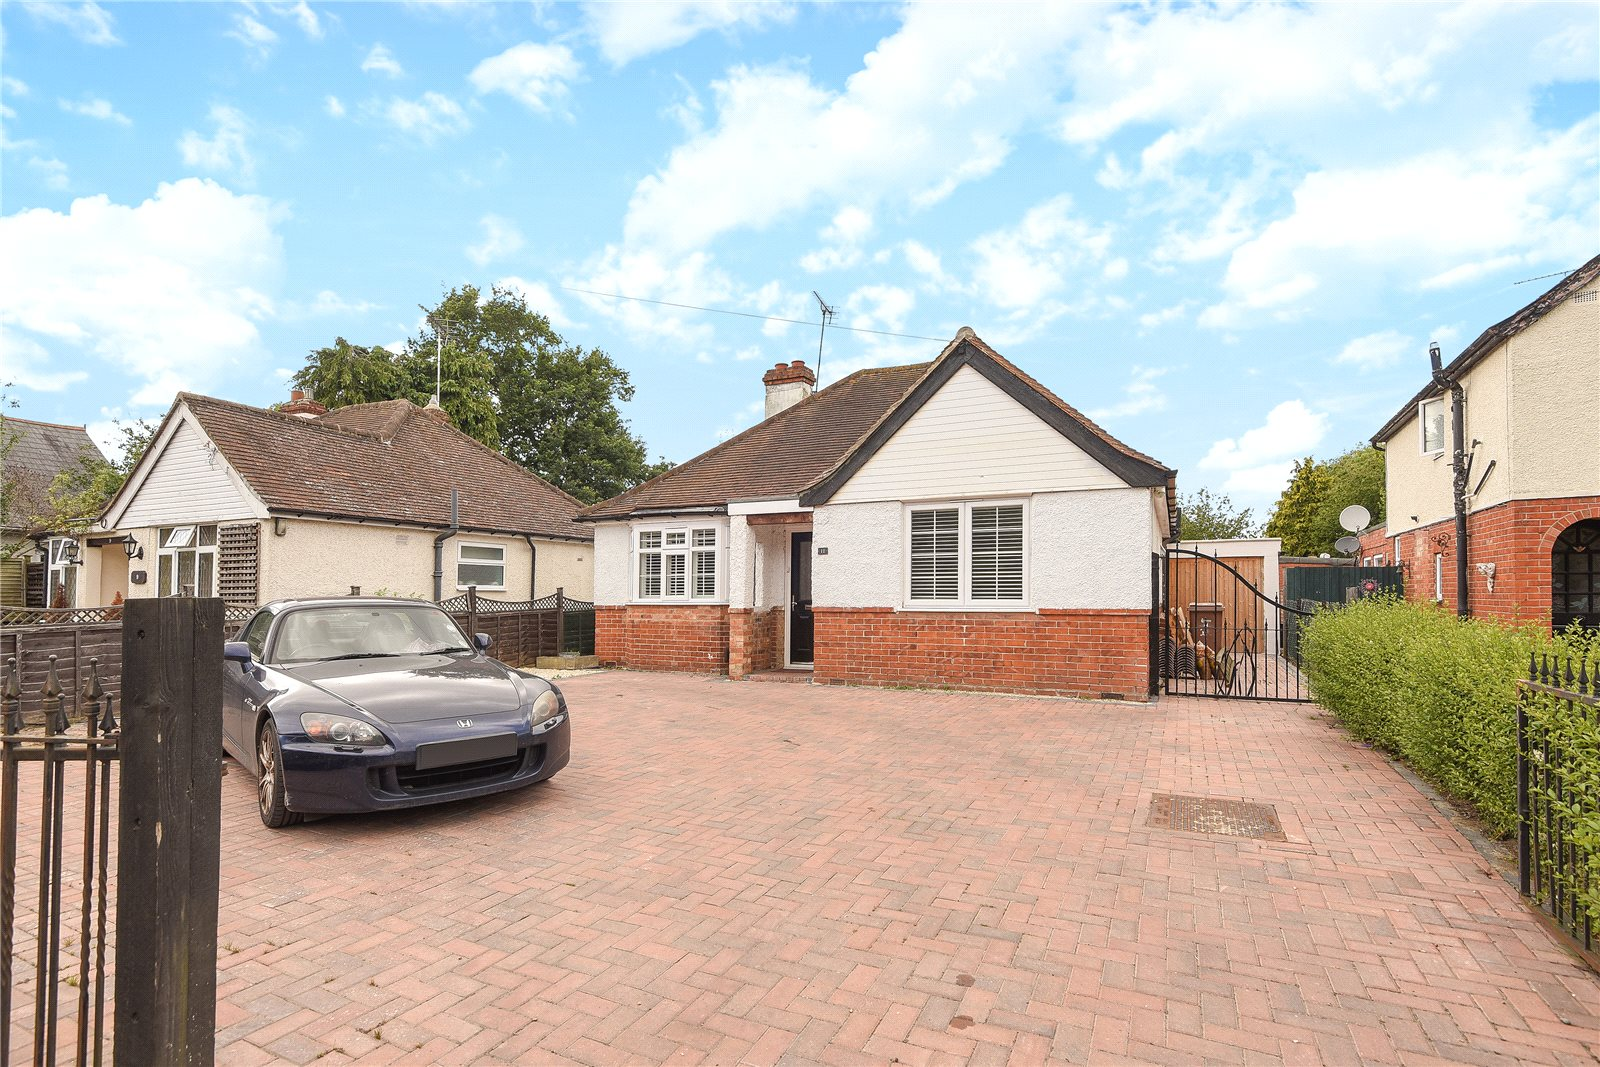 3 Bedrooms Detached Bungalow for sale in Robin Hood Lane, Winnersh, Wokingham, Berkshire, RG41